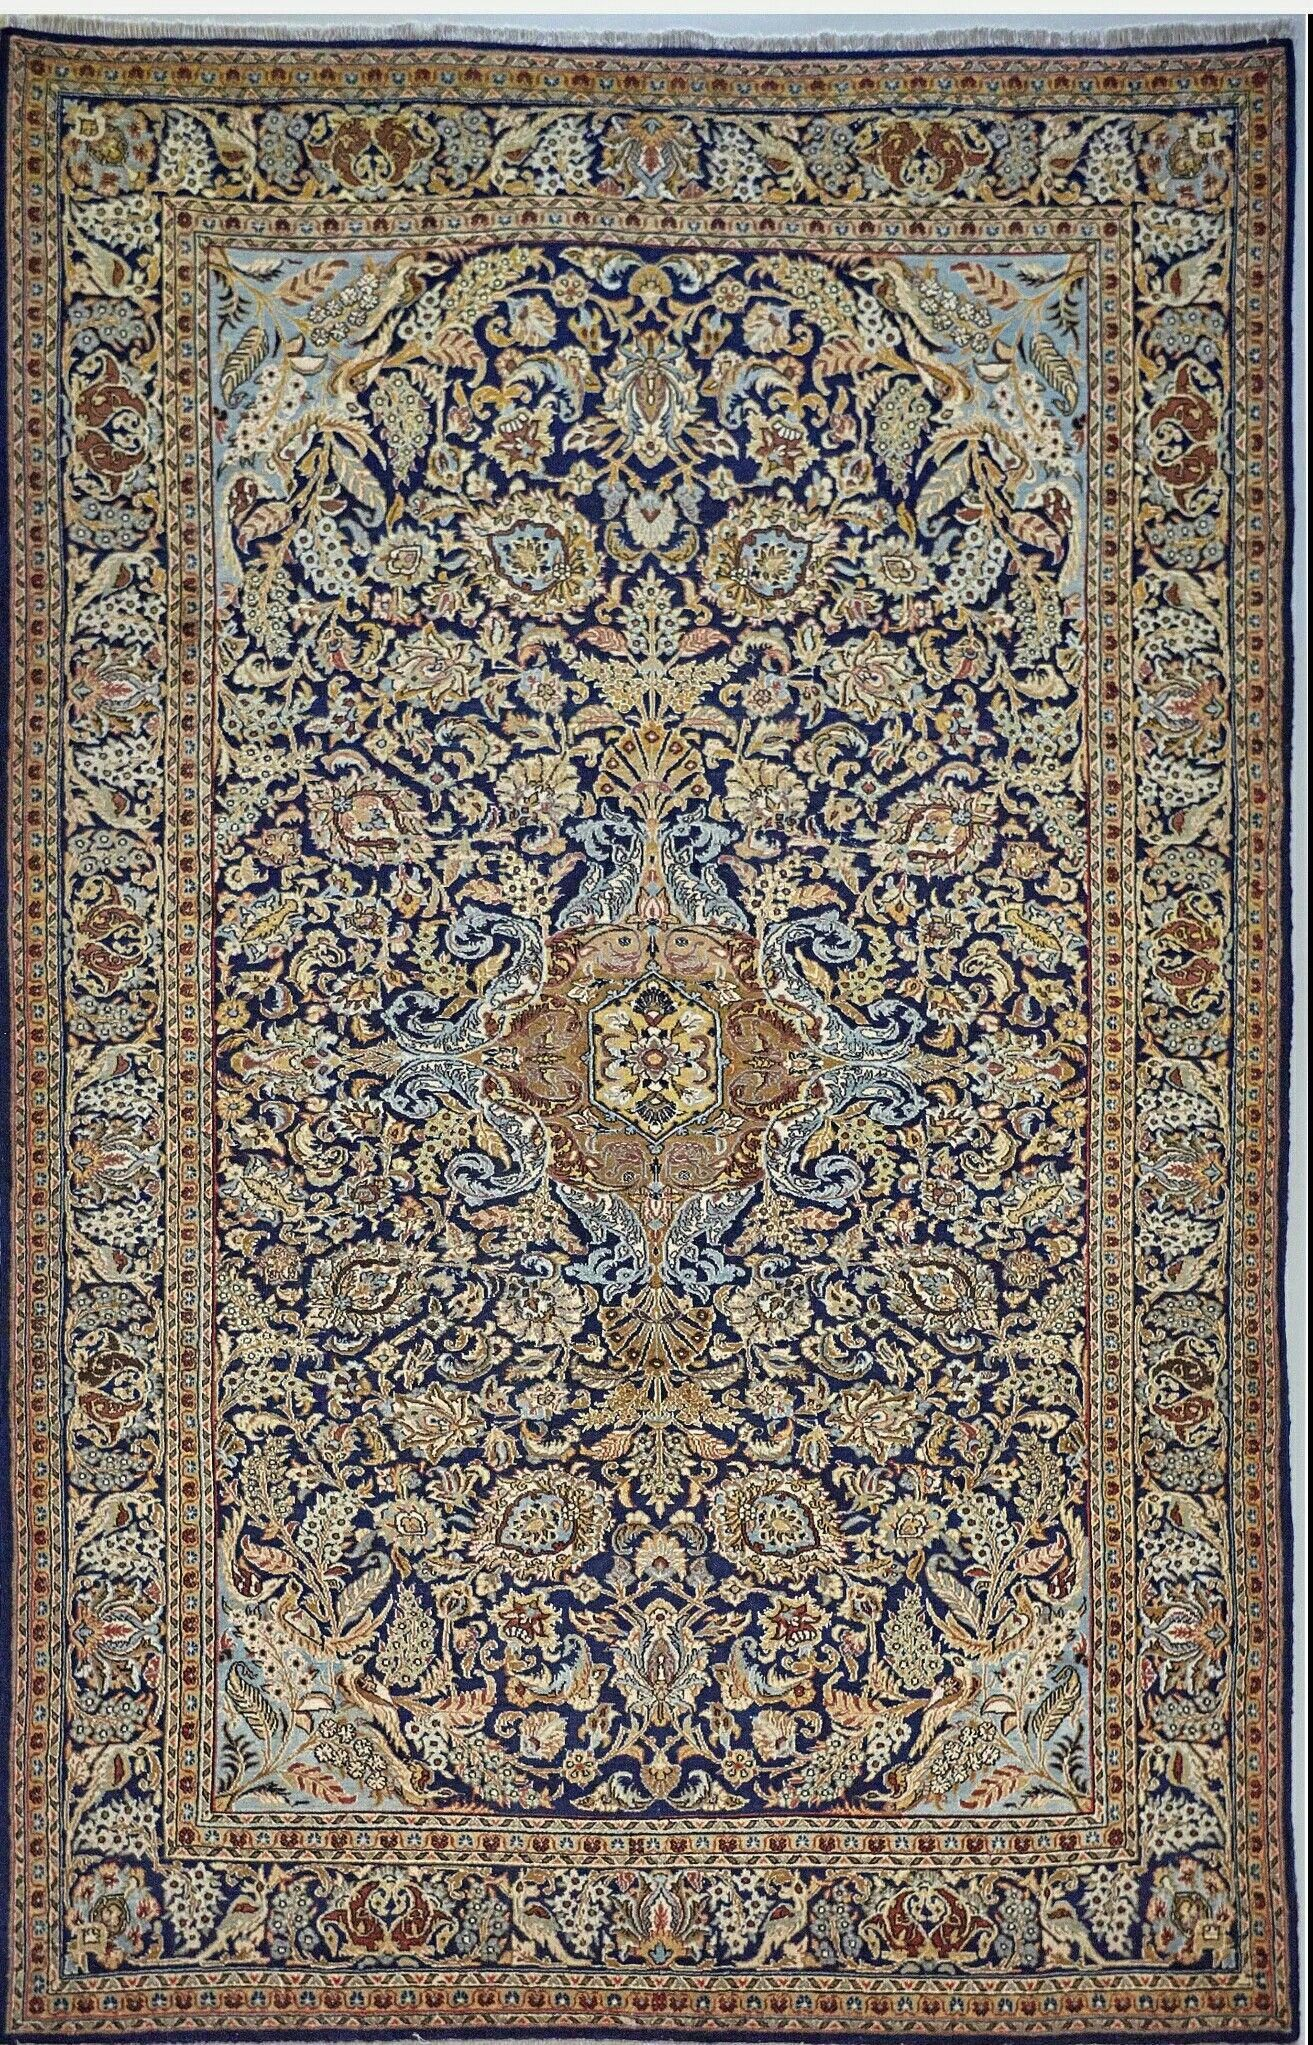 Carpet Runners By The Foot Lowes Carpetrunnerscuttosize Key 1562444407